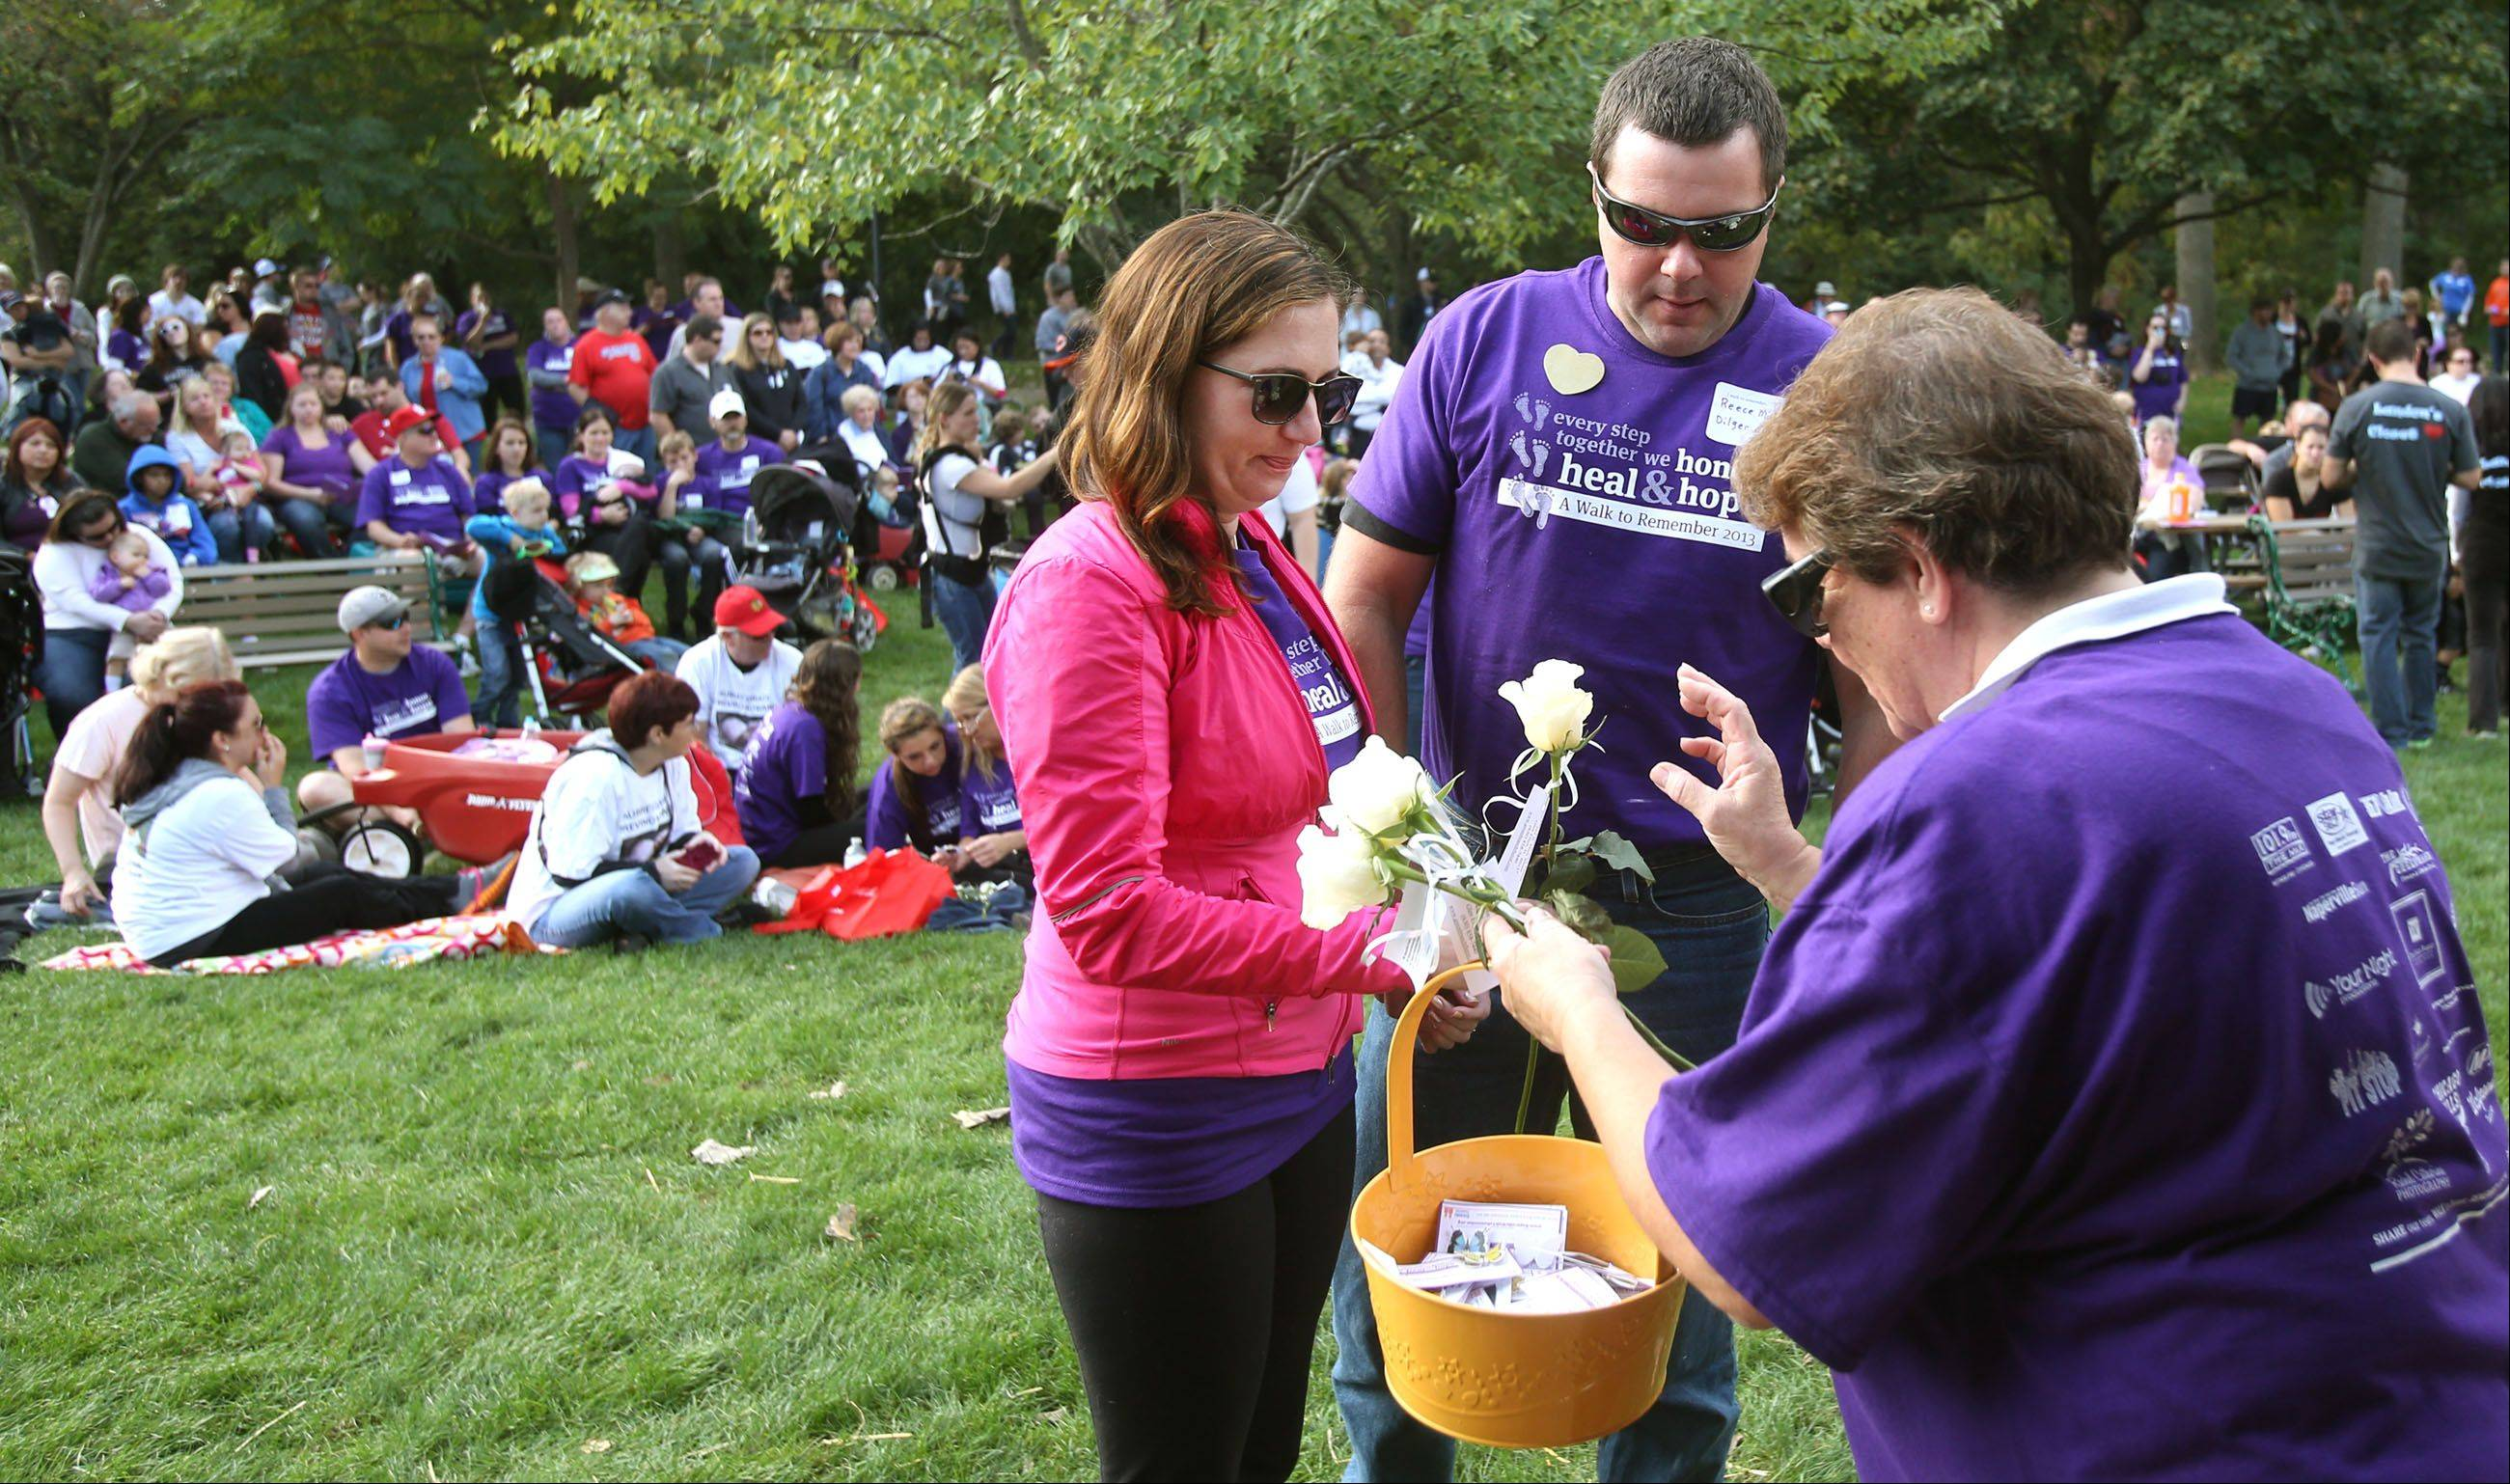 Brian and Katie Dilger of Naperville receive a rose from Kathy McNulty in honor of Reece Michael Dilger during Naperville's ninth annual A Walk to Remember. The walk benefits the Edward Foundation SHARE program.